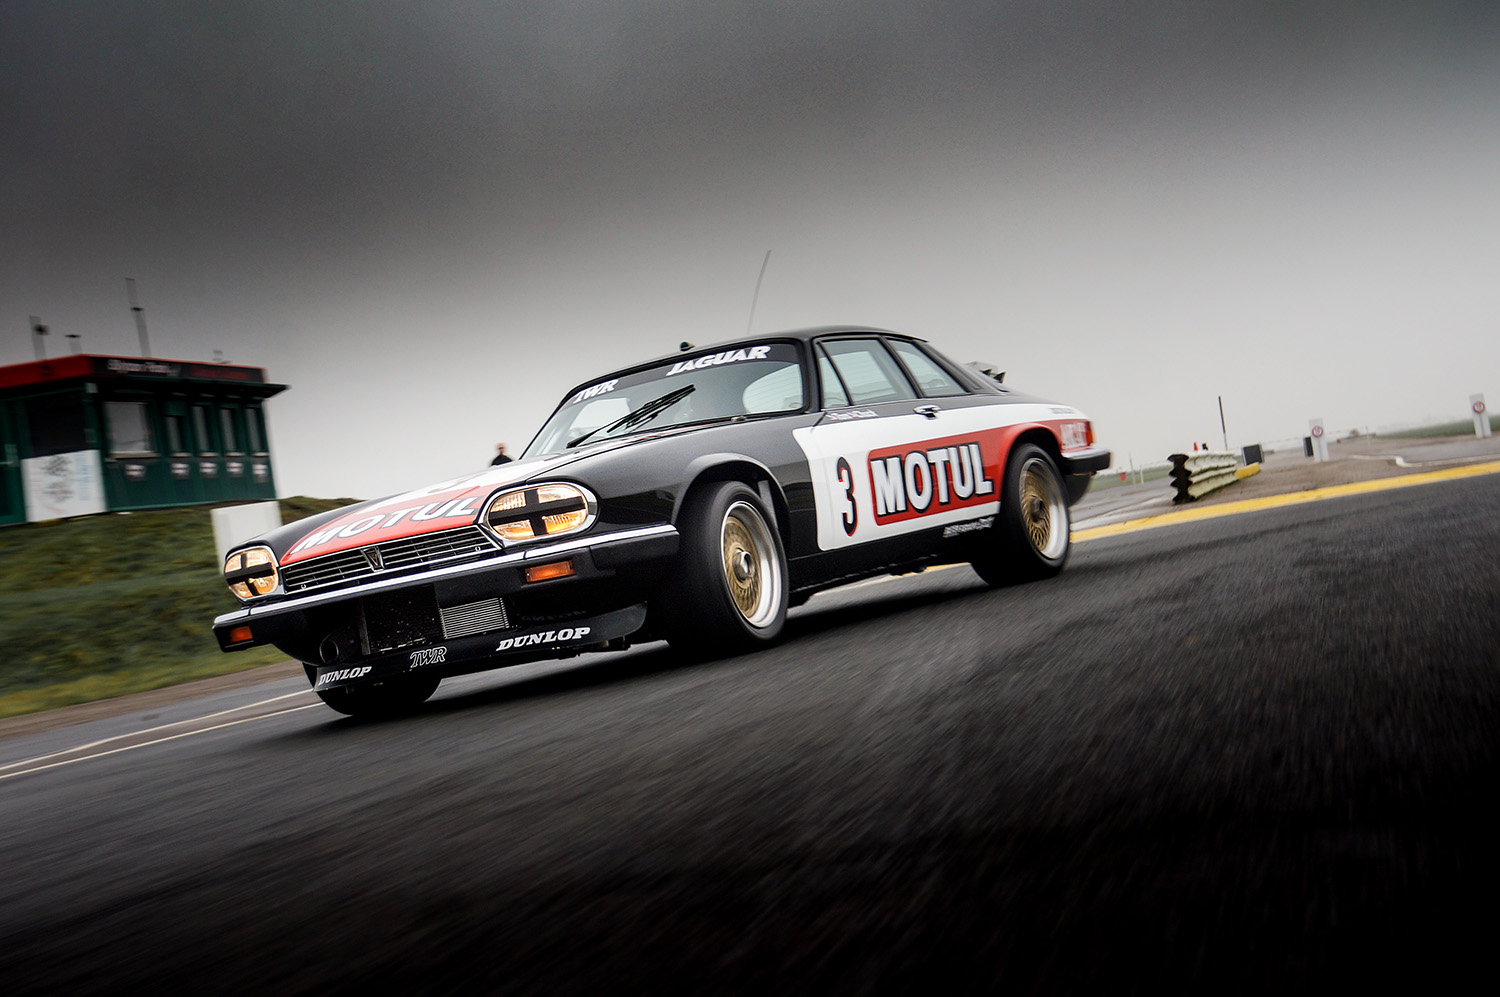 jaguar_twr_xjs_walkinshaw_wilkinson_sayer_selection_scragg_blyton_circuit_3.jpg